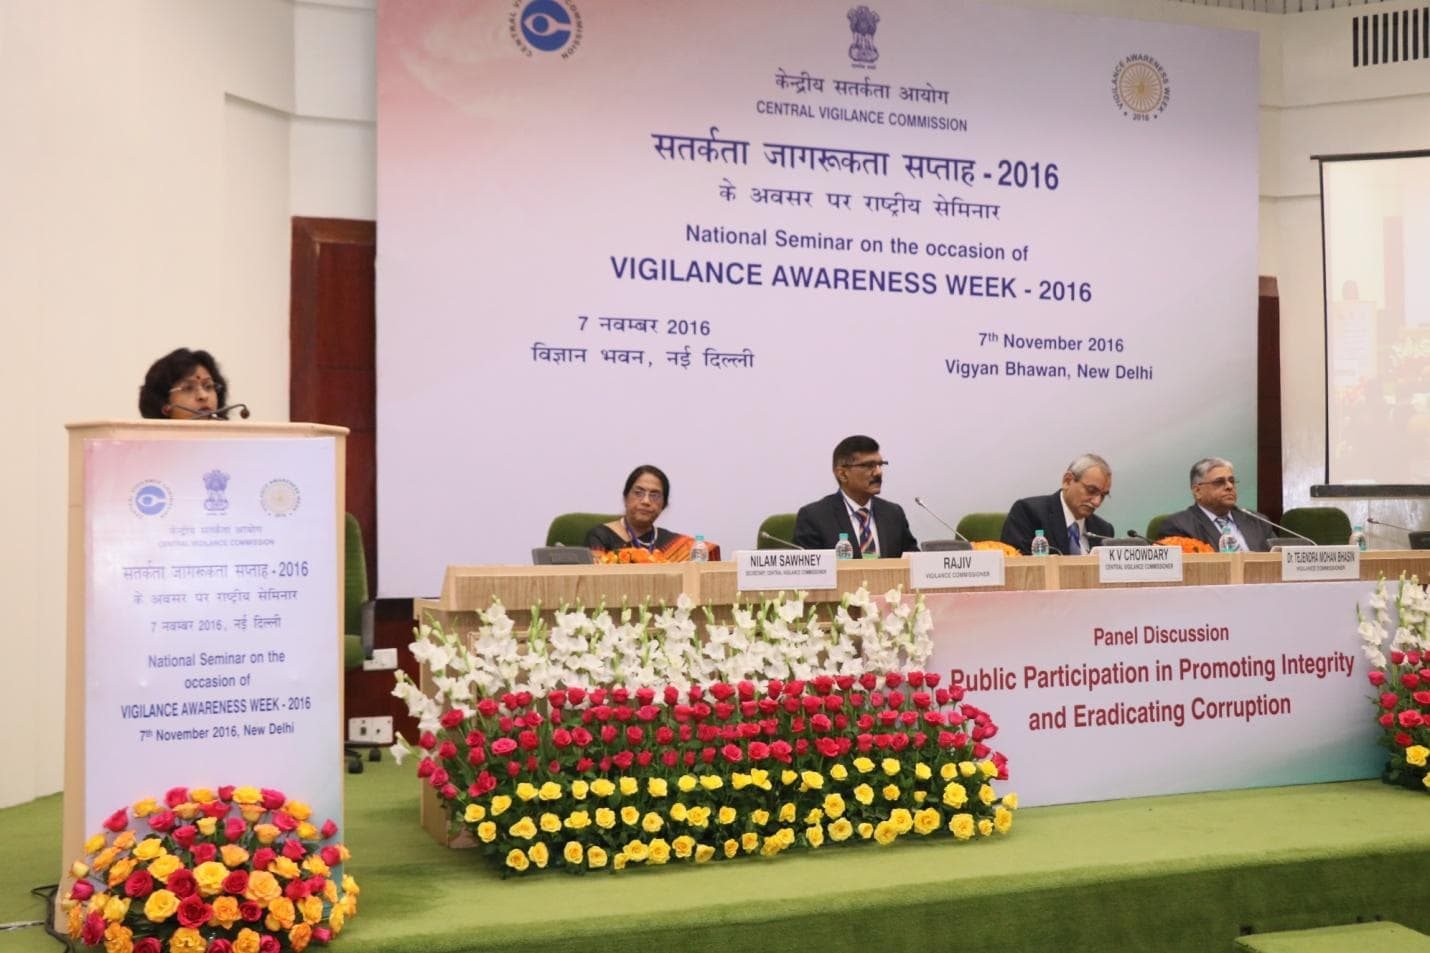 National Seminar VIGILANCE AWARENESS WEEK-2016